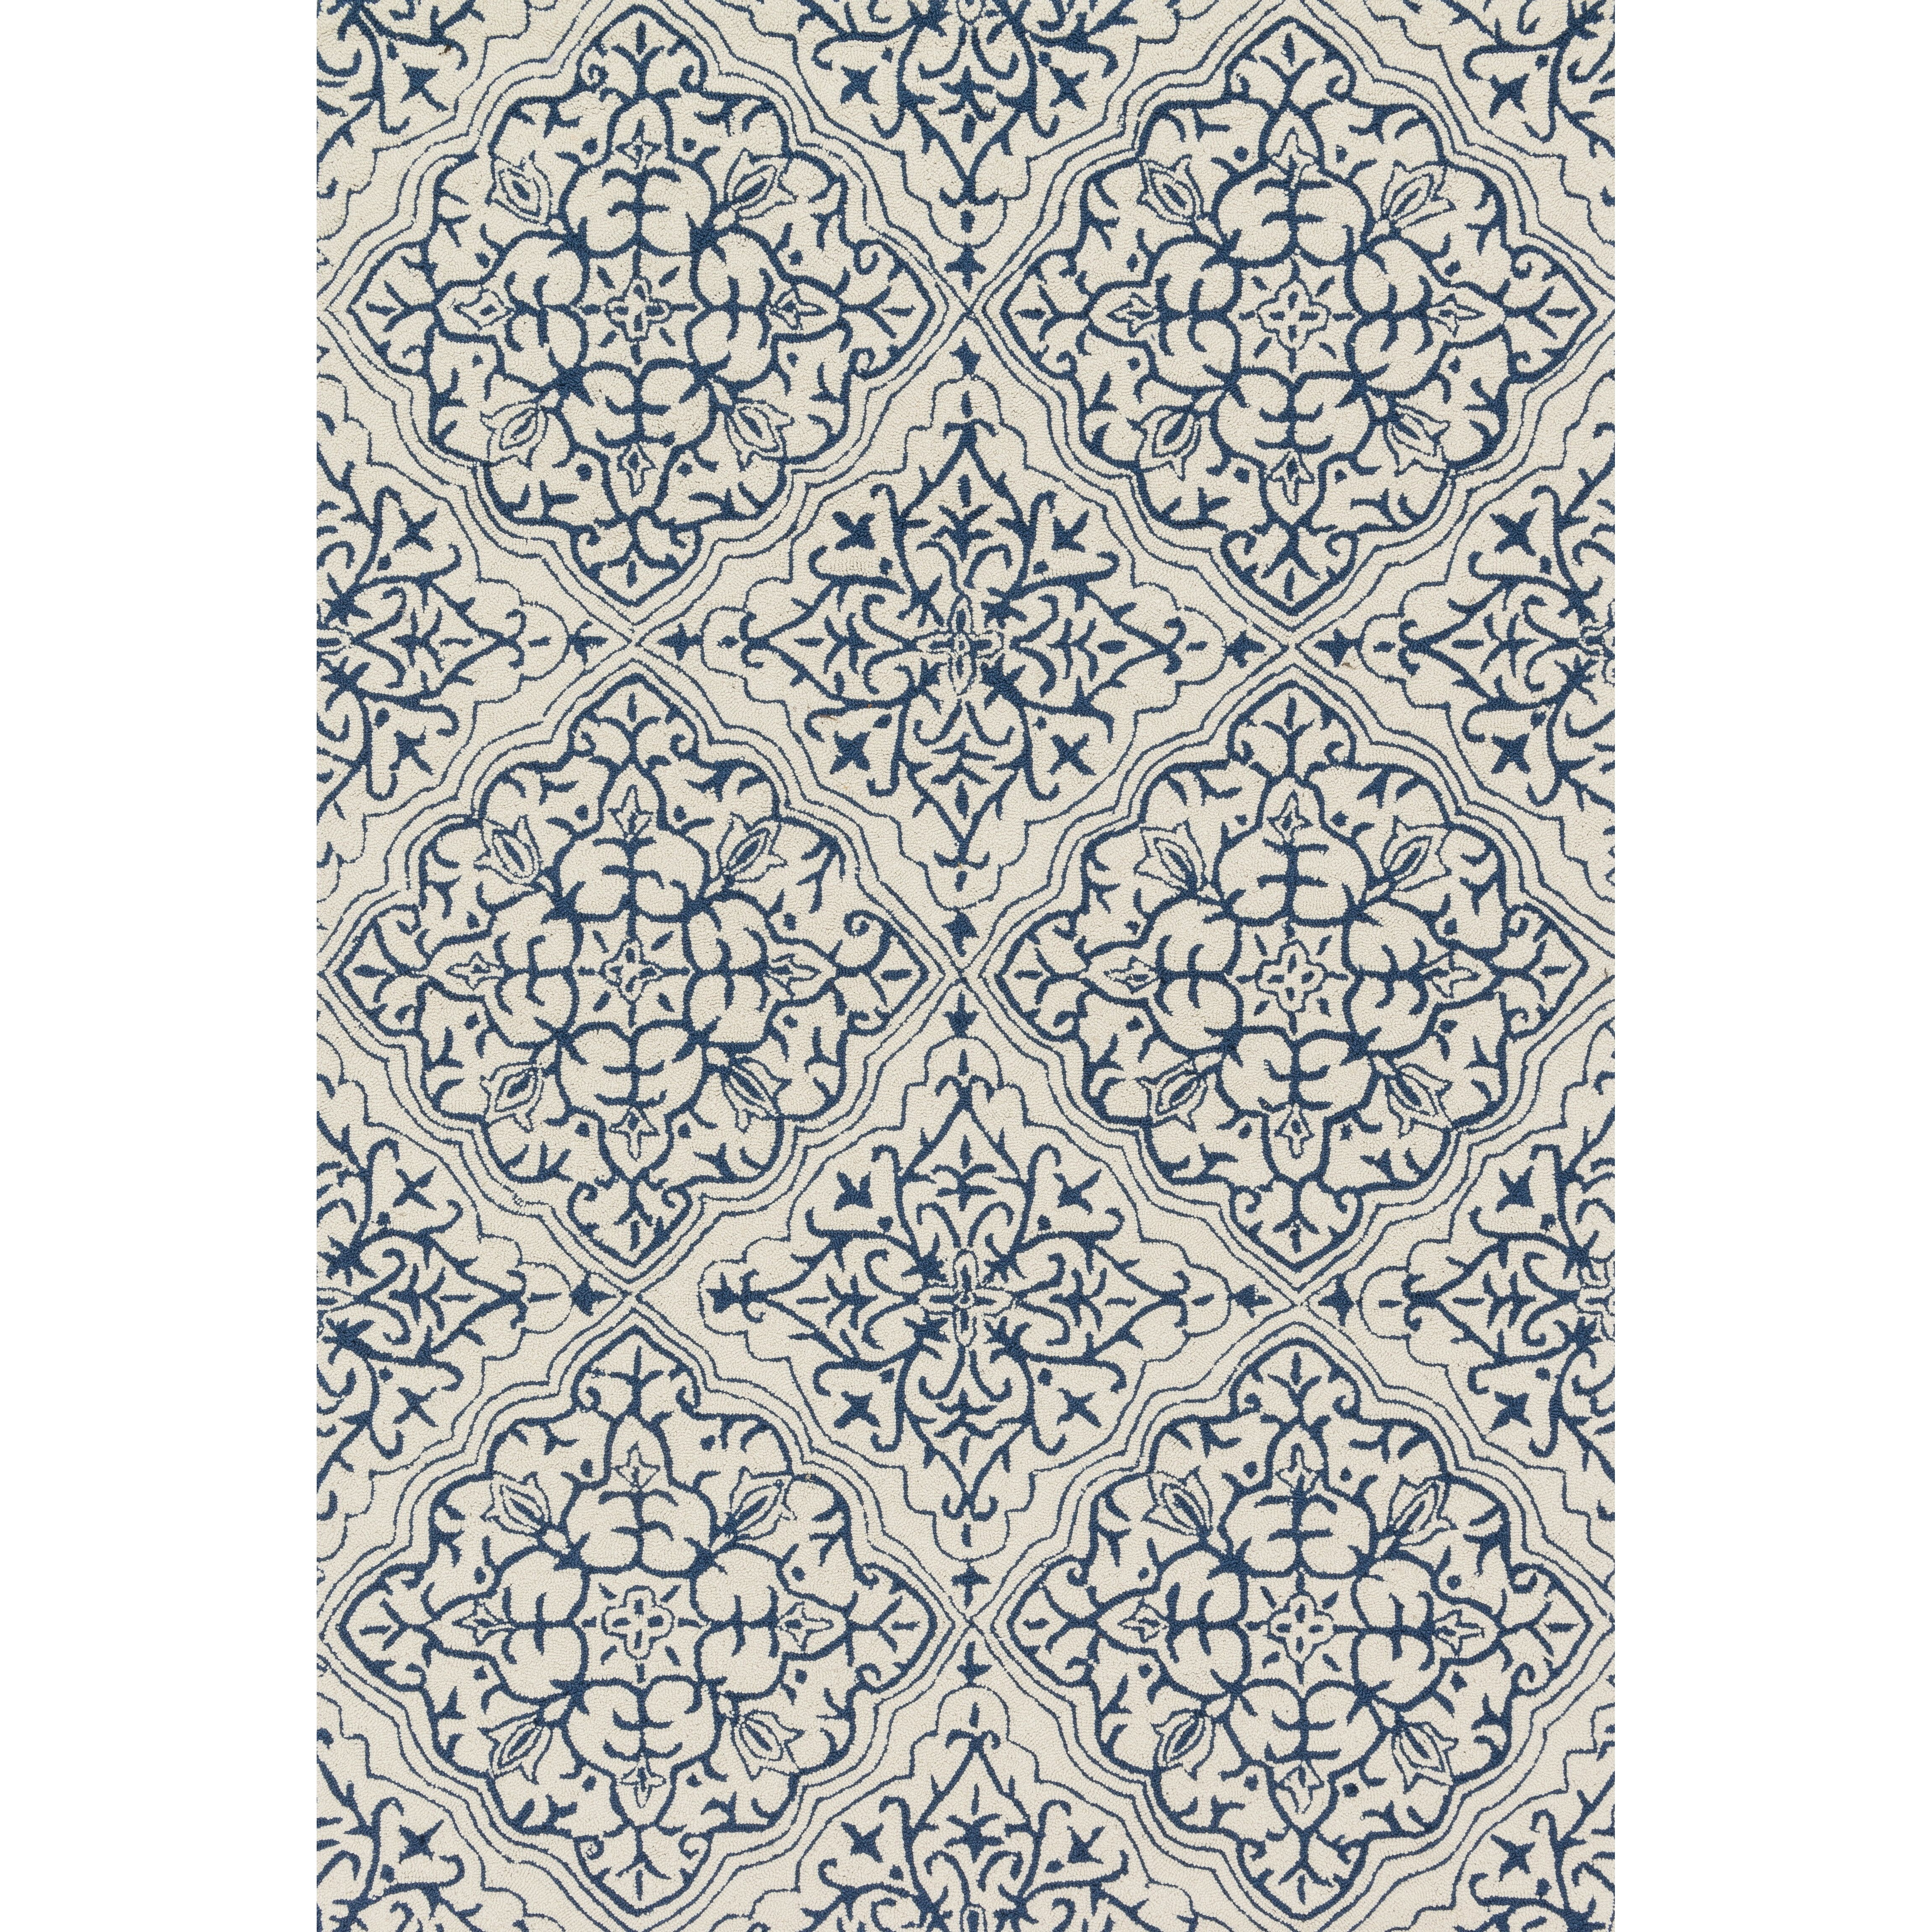 Woolrich Blue And White Floral Rug: Loloi Rugs Francesca Blue & White Floral Area Rug